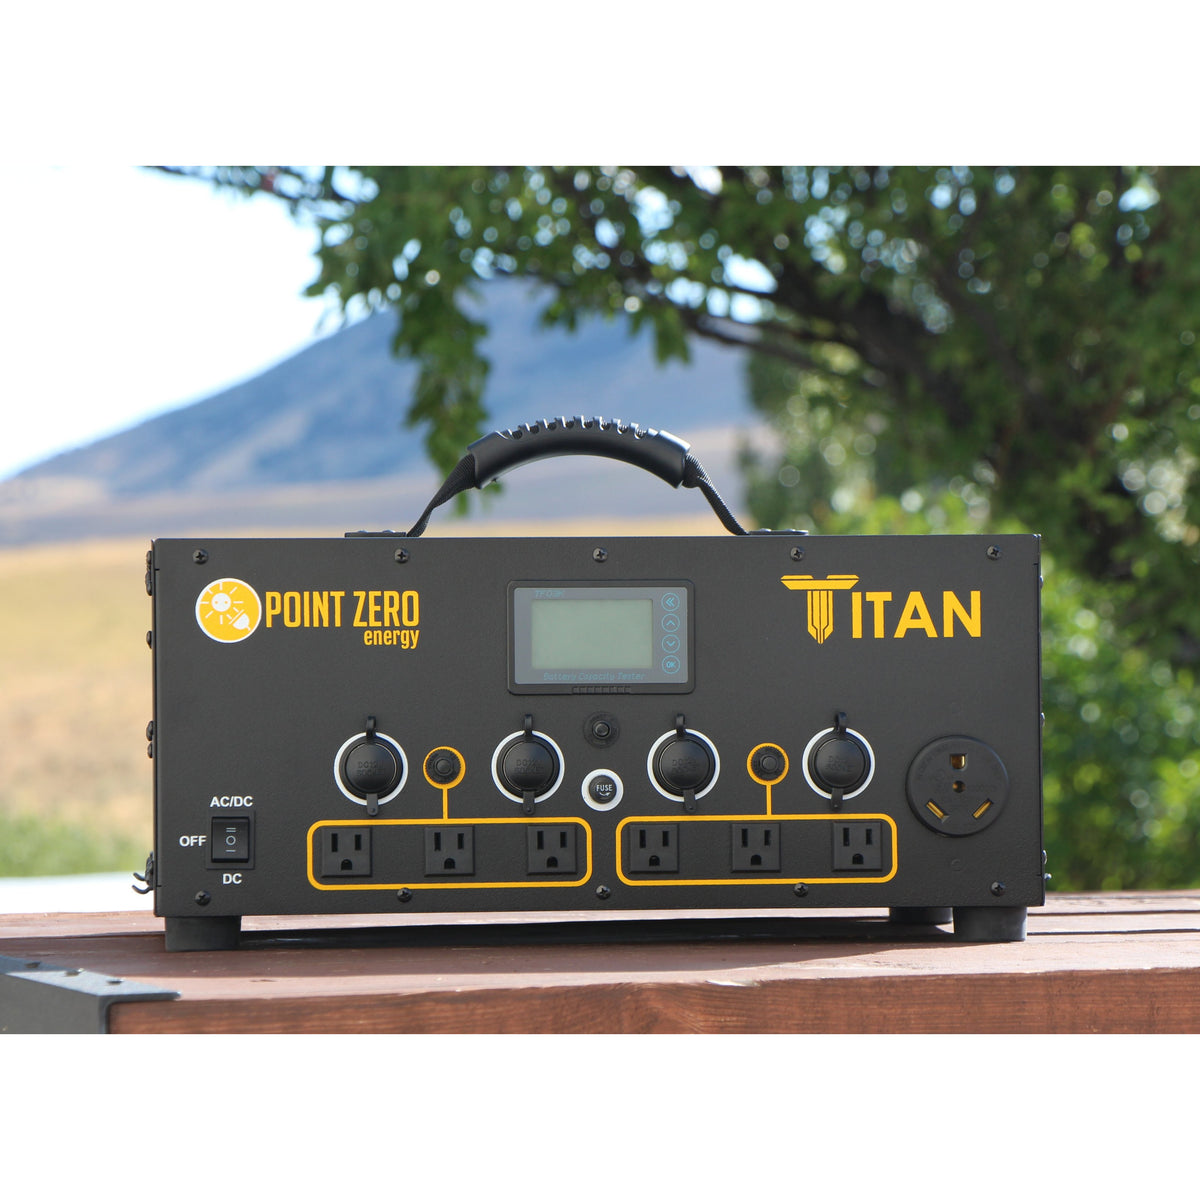 Picture of the Titan Solar Generator outdoor placed in a wooden base. - Point Zero Energy Generators